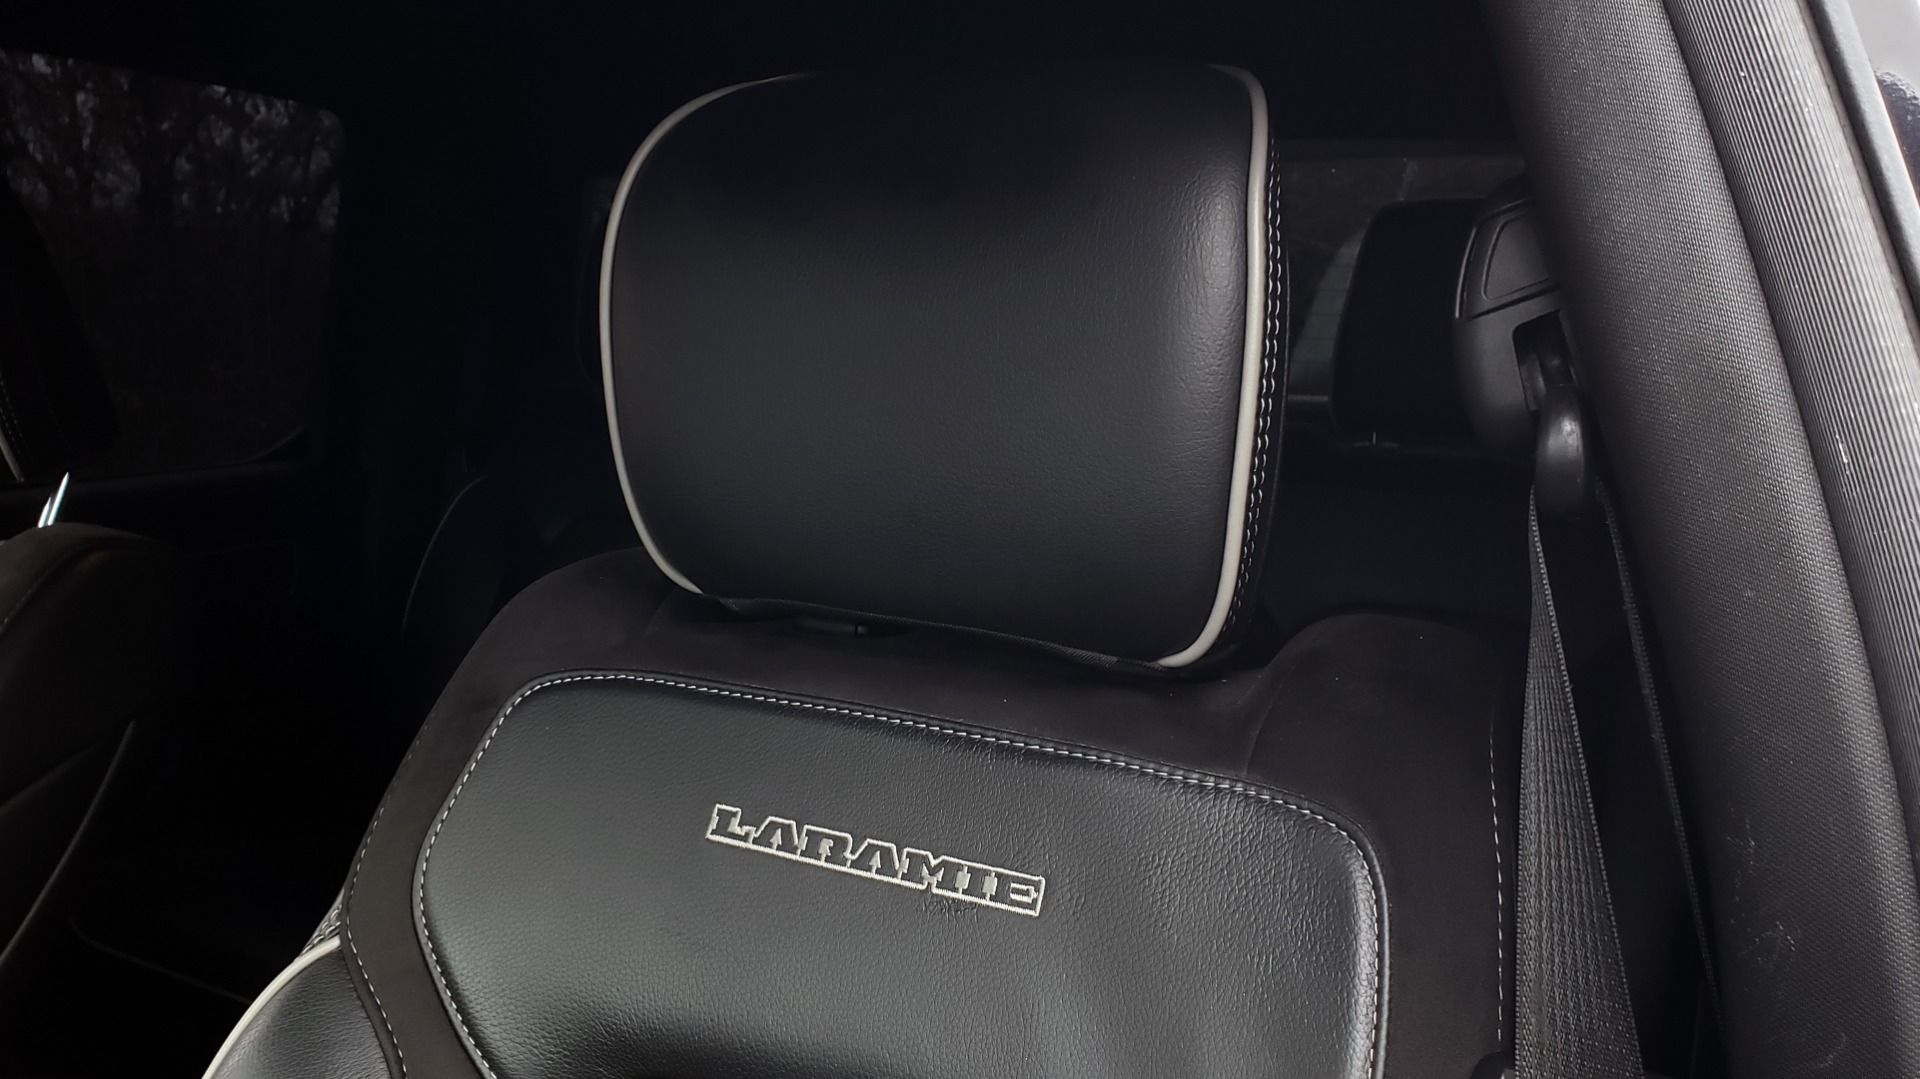 Used 2019 Ram 1500 LARAMIE SPORT / 2WD / 5.7L HEMI / NAV / BLIND SPOT / HTD STS / REARVIEW for sale Sold at Formula Imports in Charlotte NC 28227 19